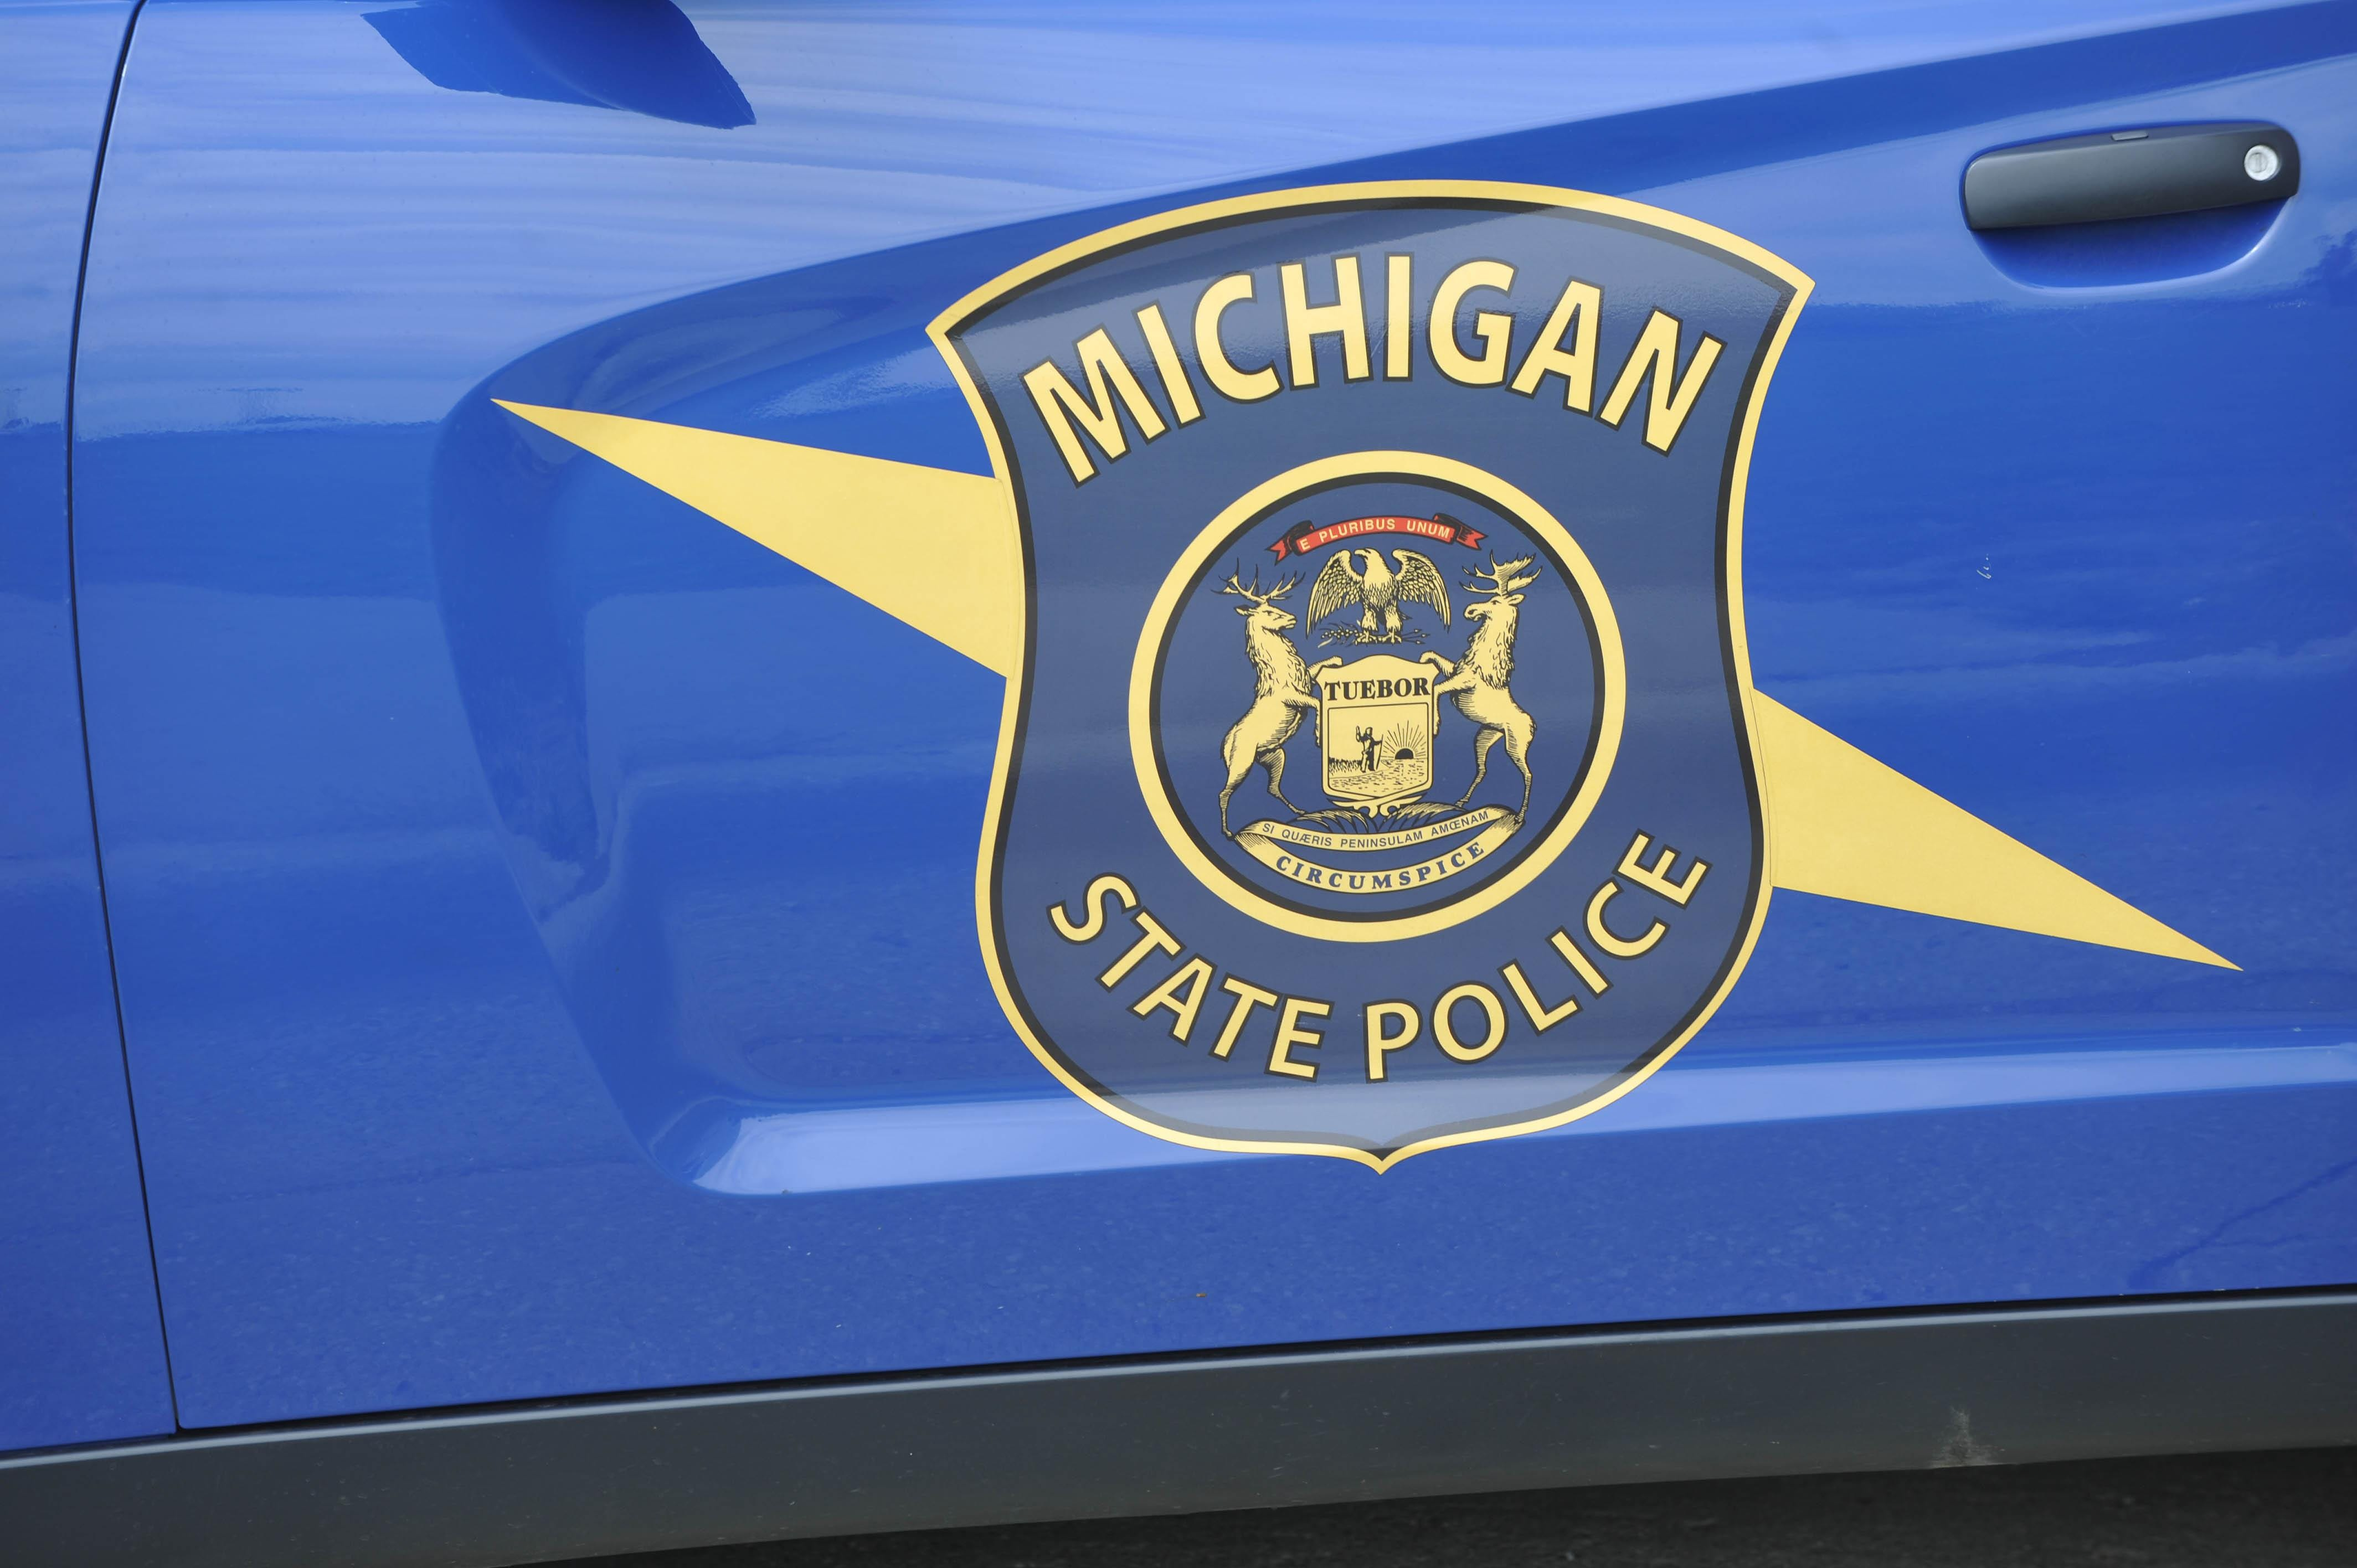 Woman with 3-year-old attempted robbery in Oakland County, police say